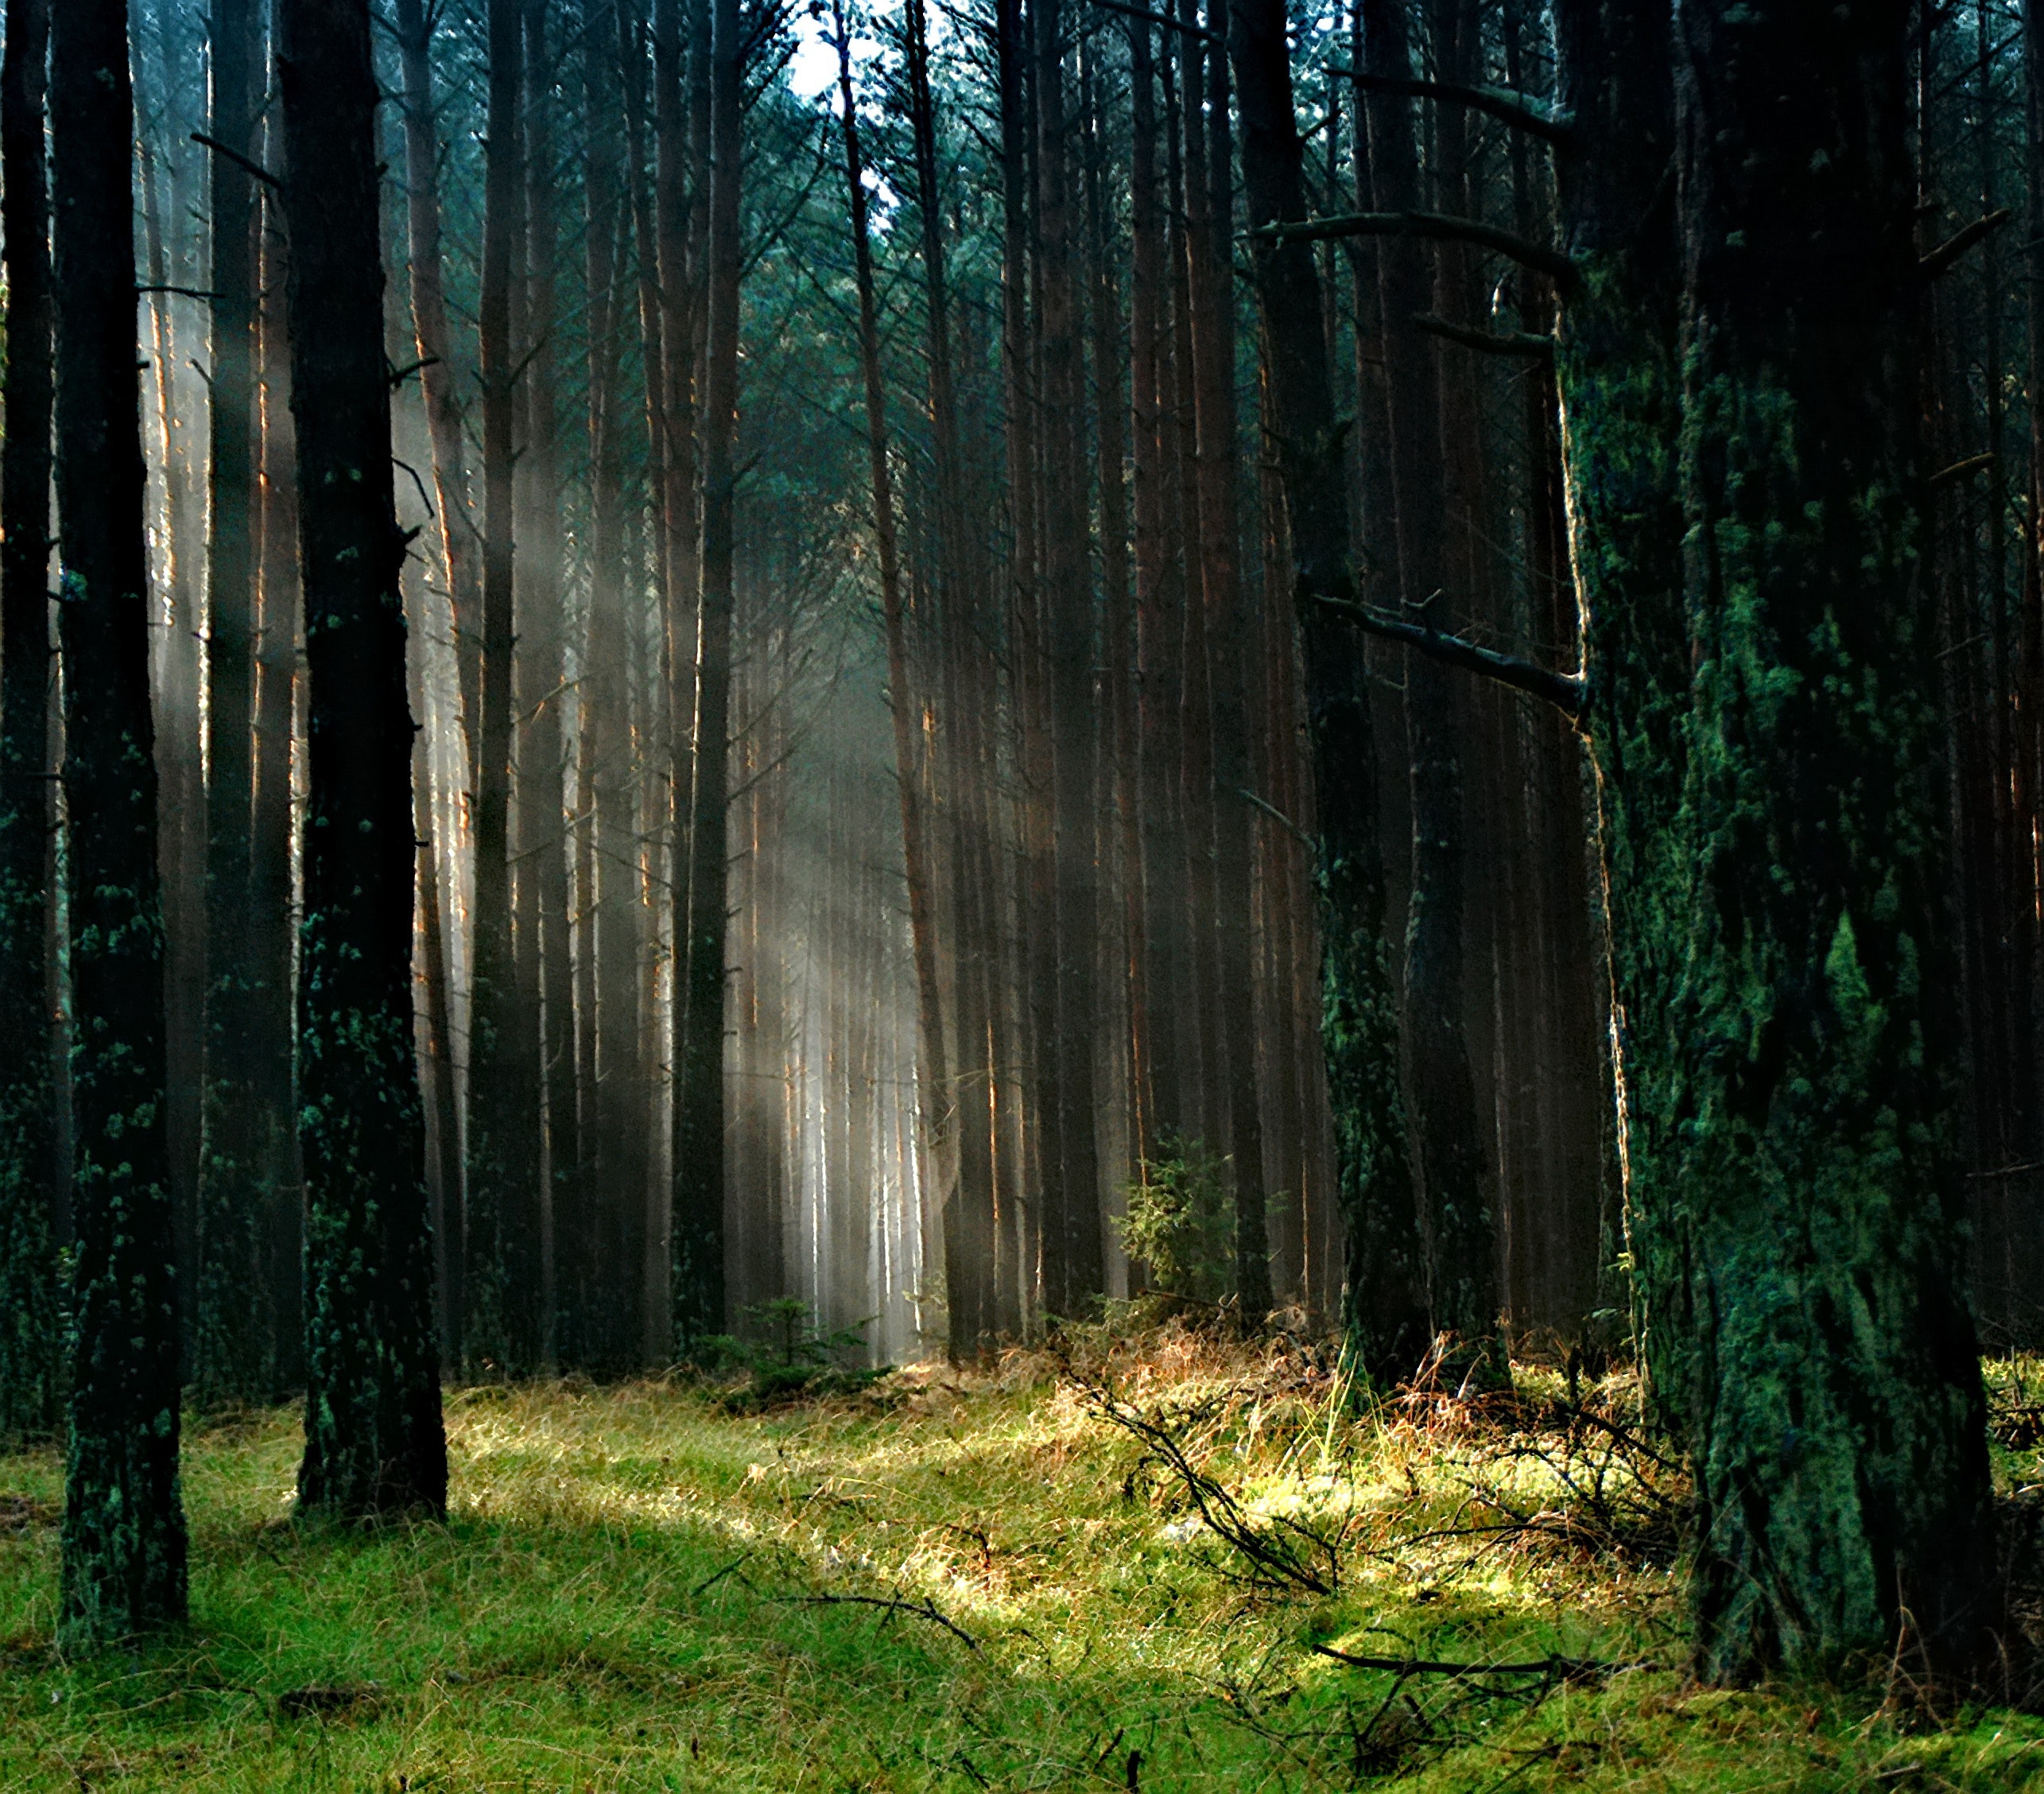 Forest With Sunlight, Trees, Woods, Sunlight, Nature, HQ Photo